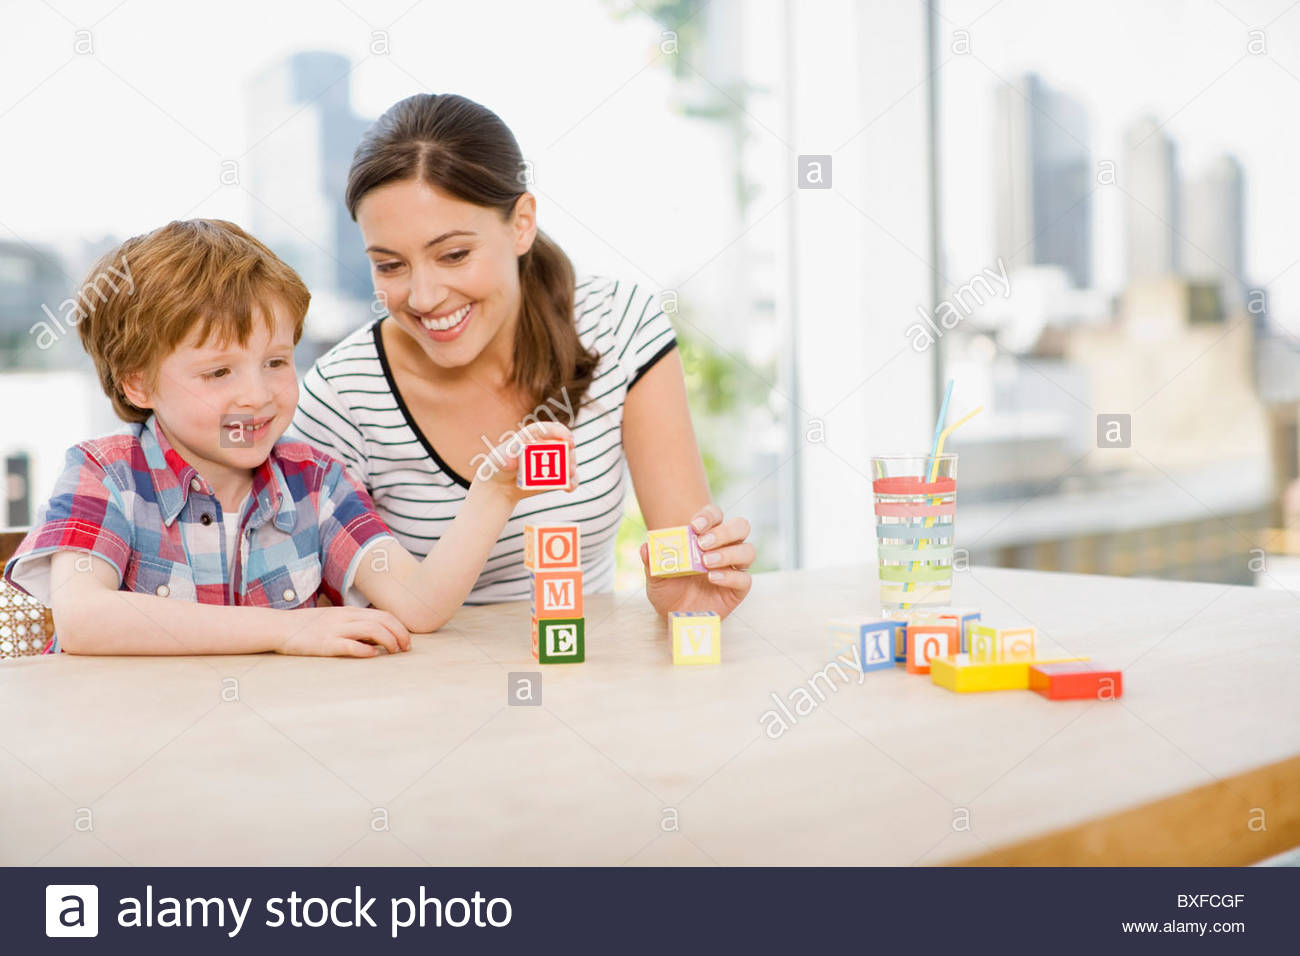 Mother watching son stacking alphabet blocks and spelling 'home' - Stock Image